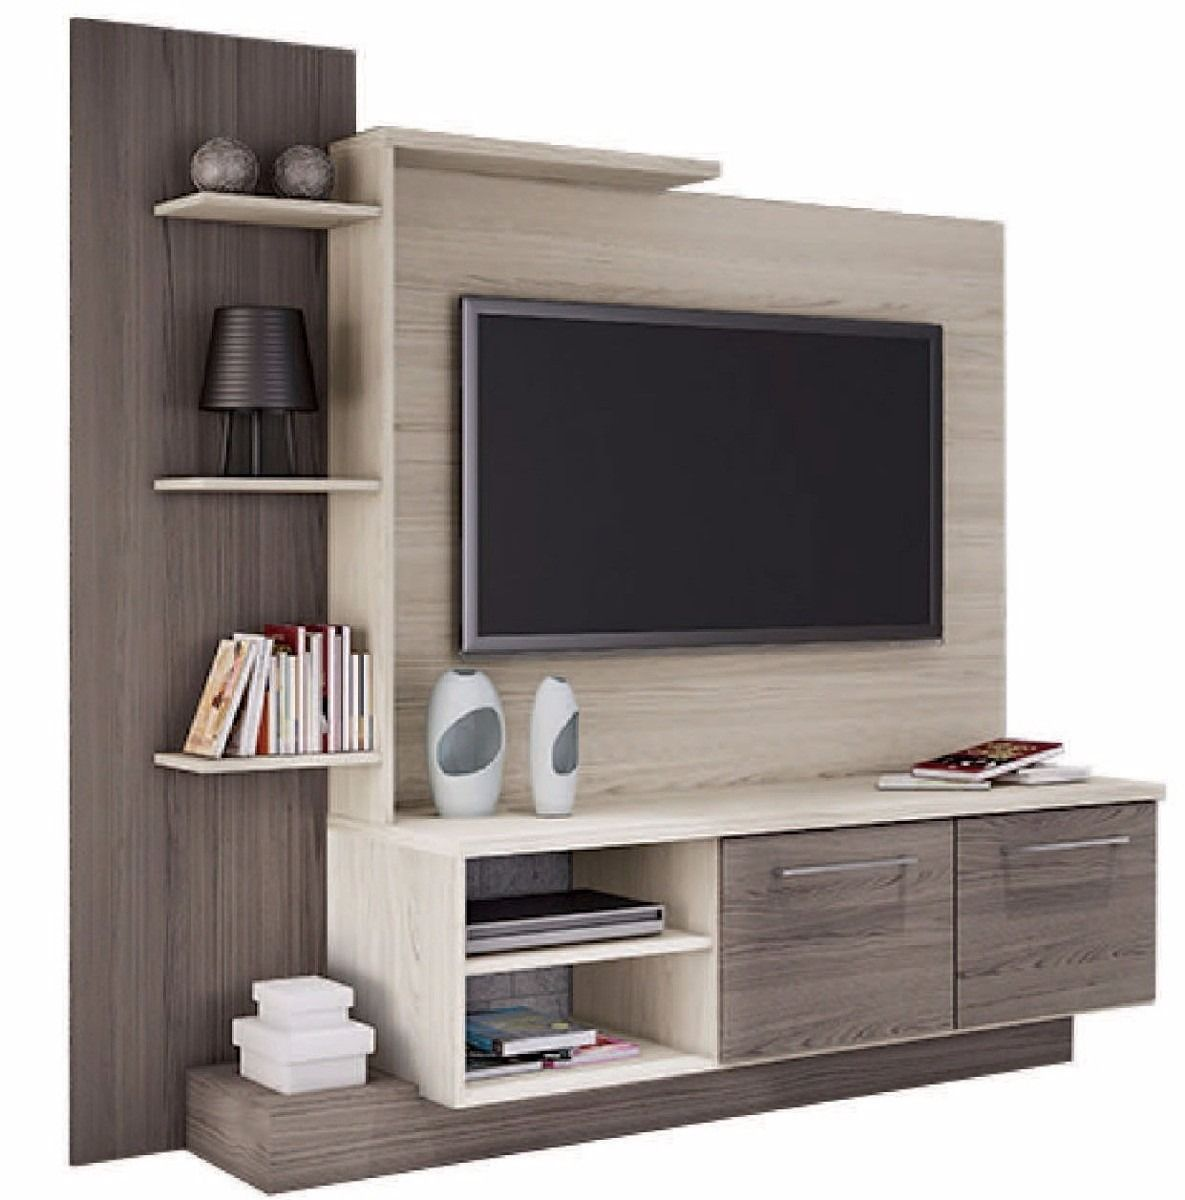 Muebles Home Design Rack Mesa Tv Led Lcd Mueble De Comedor Modular Home